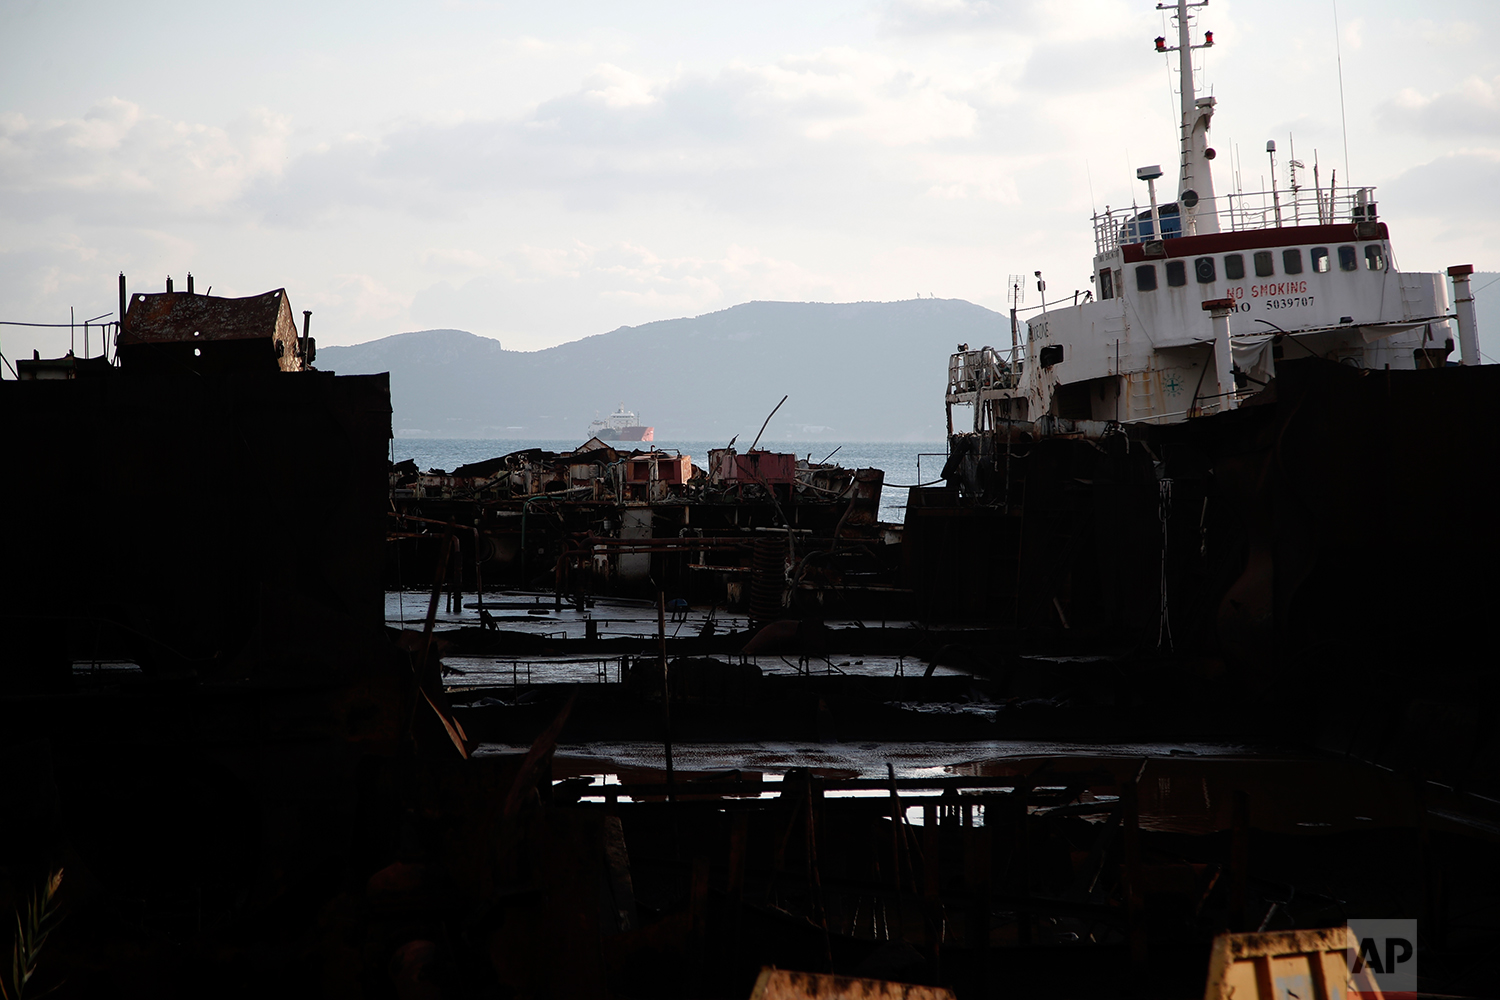 In this Wednesday, Dec. 19, 2018 photo, a cut tanker with crude oil, that was recovered after spending years as a shipwreck is photographed at a dock in Elefsina, west of Athens. (AP Photo/Thanassis Stavrakis)